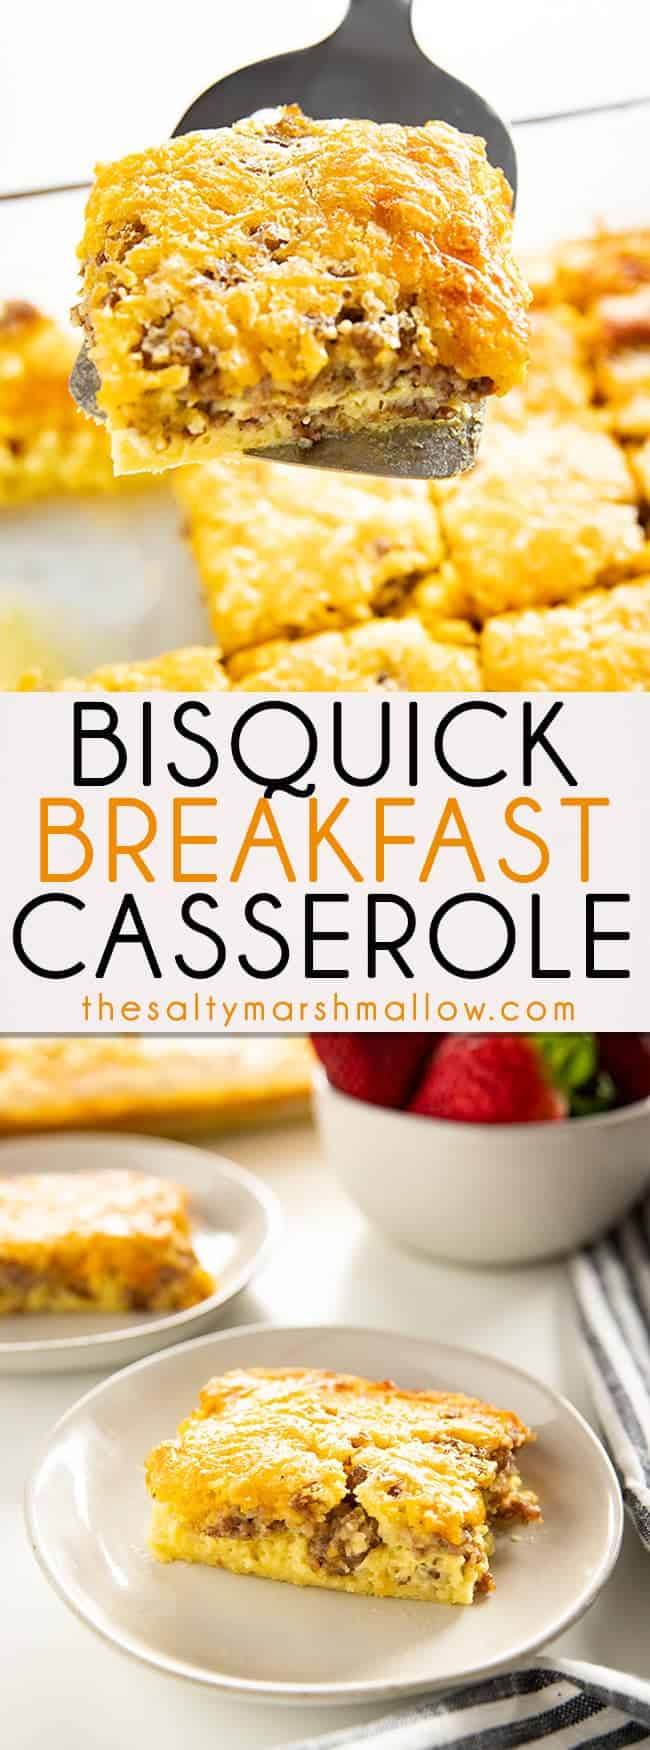 Photo of Bisquick Breakfast Casserole – The Salty Marshmallow